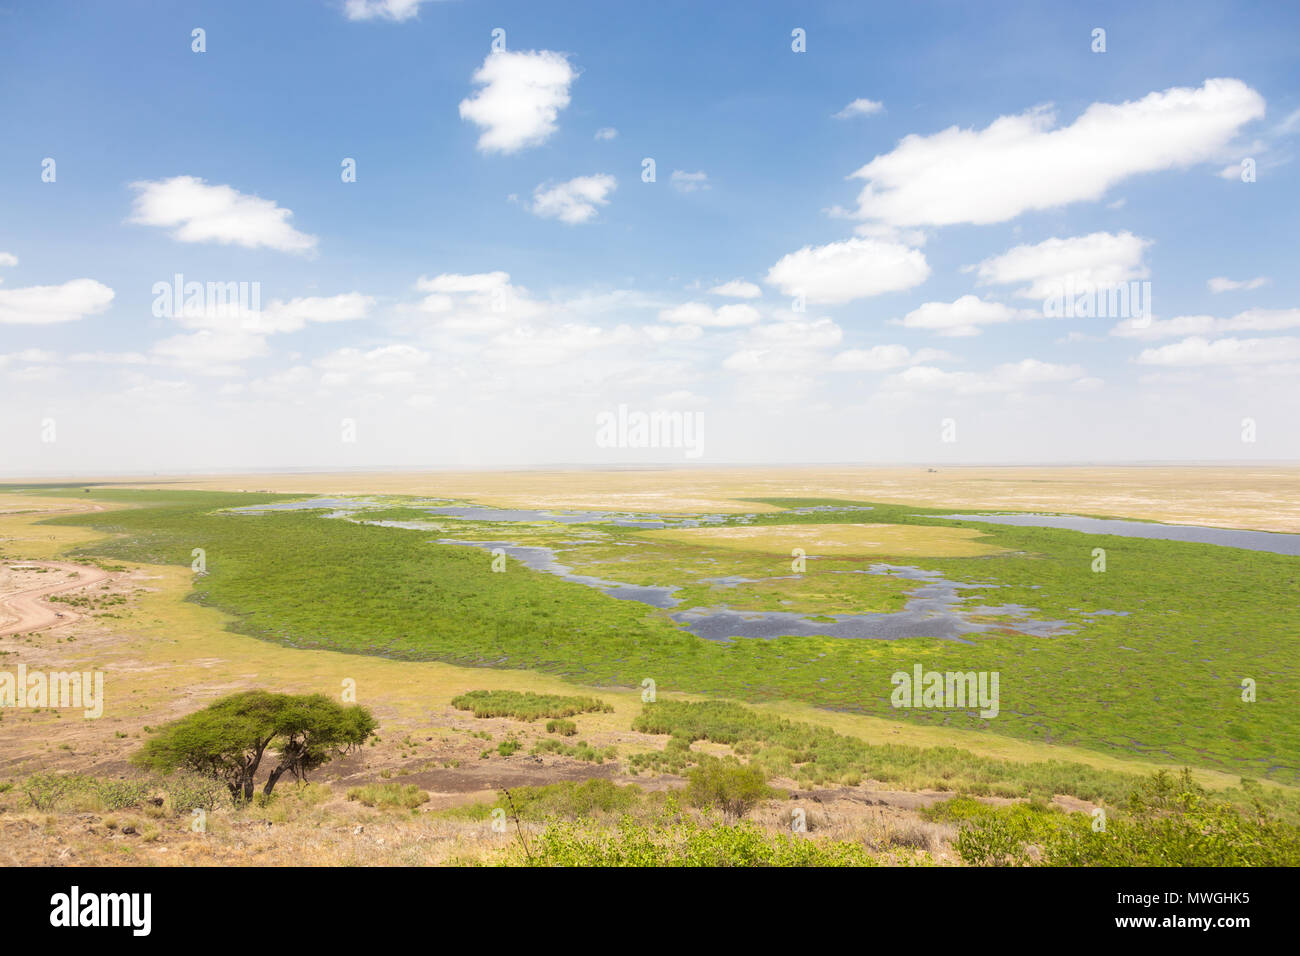 Panoramiv view of Amboseli national park, wildlife conservation area in Kenya. - Stock Image